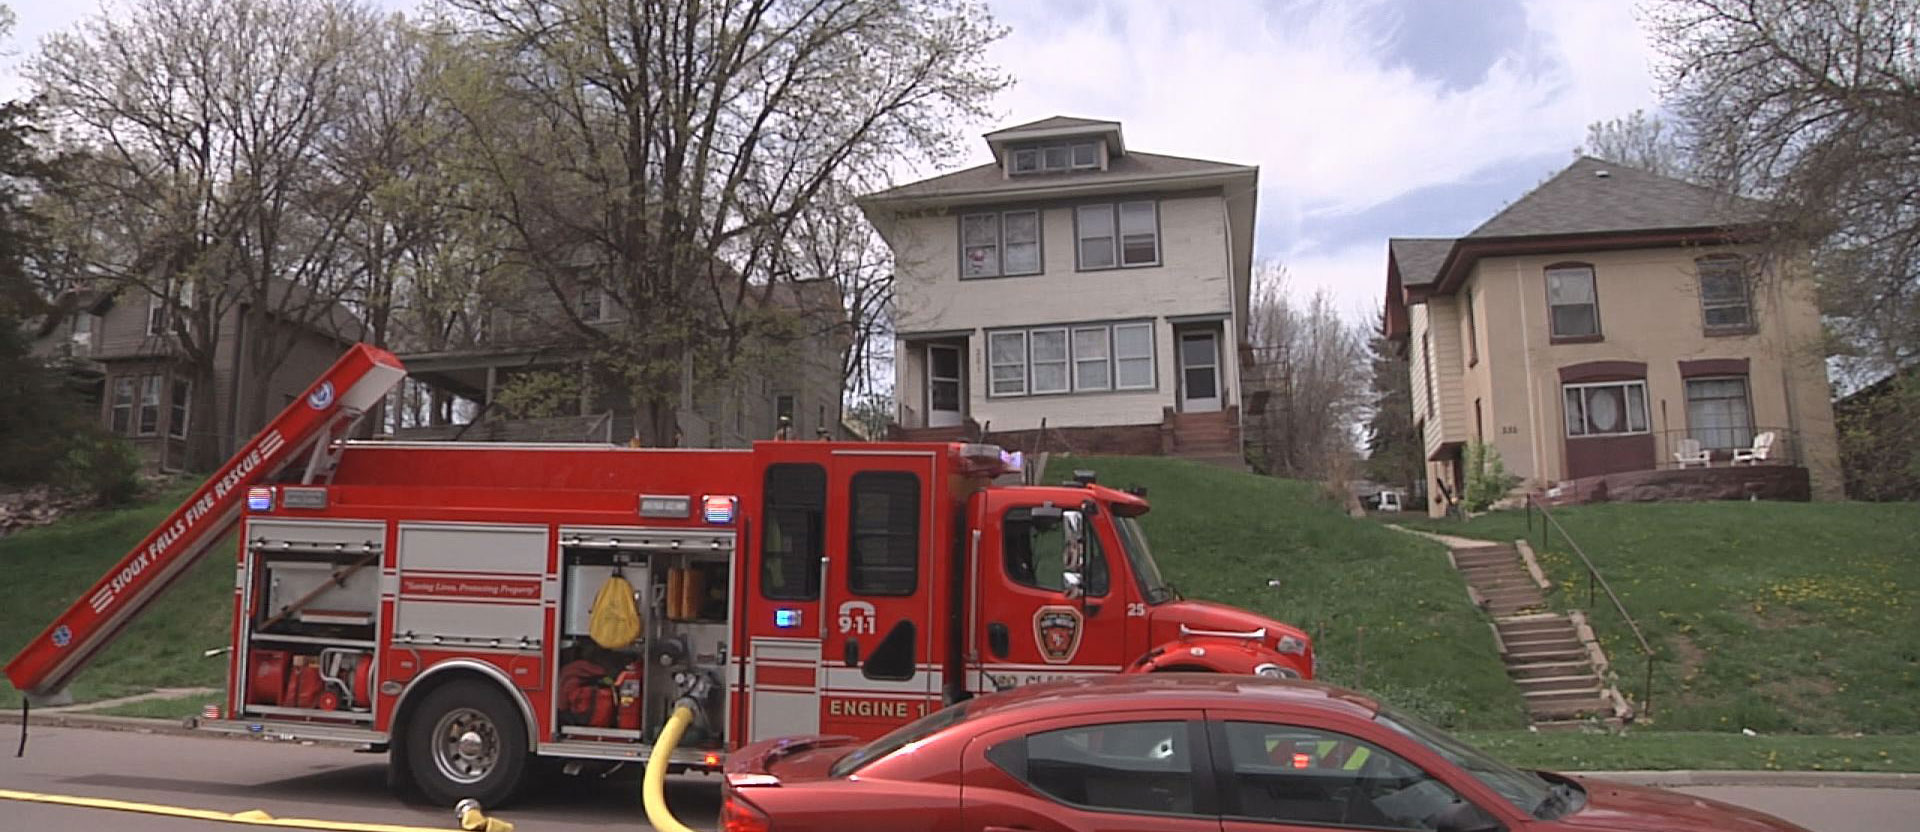 Sioux Falls Spring Ave Fire